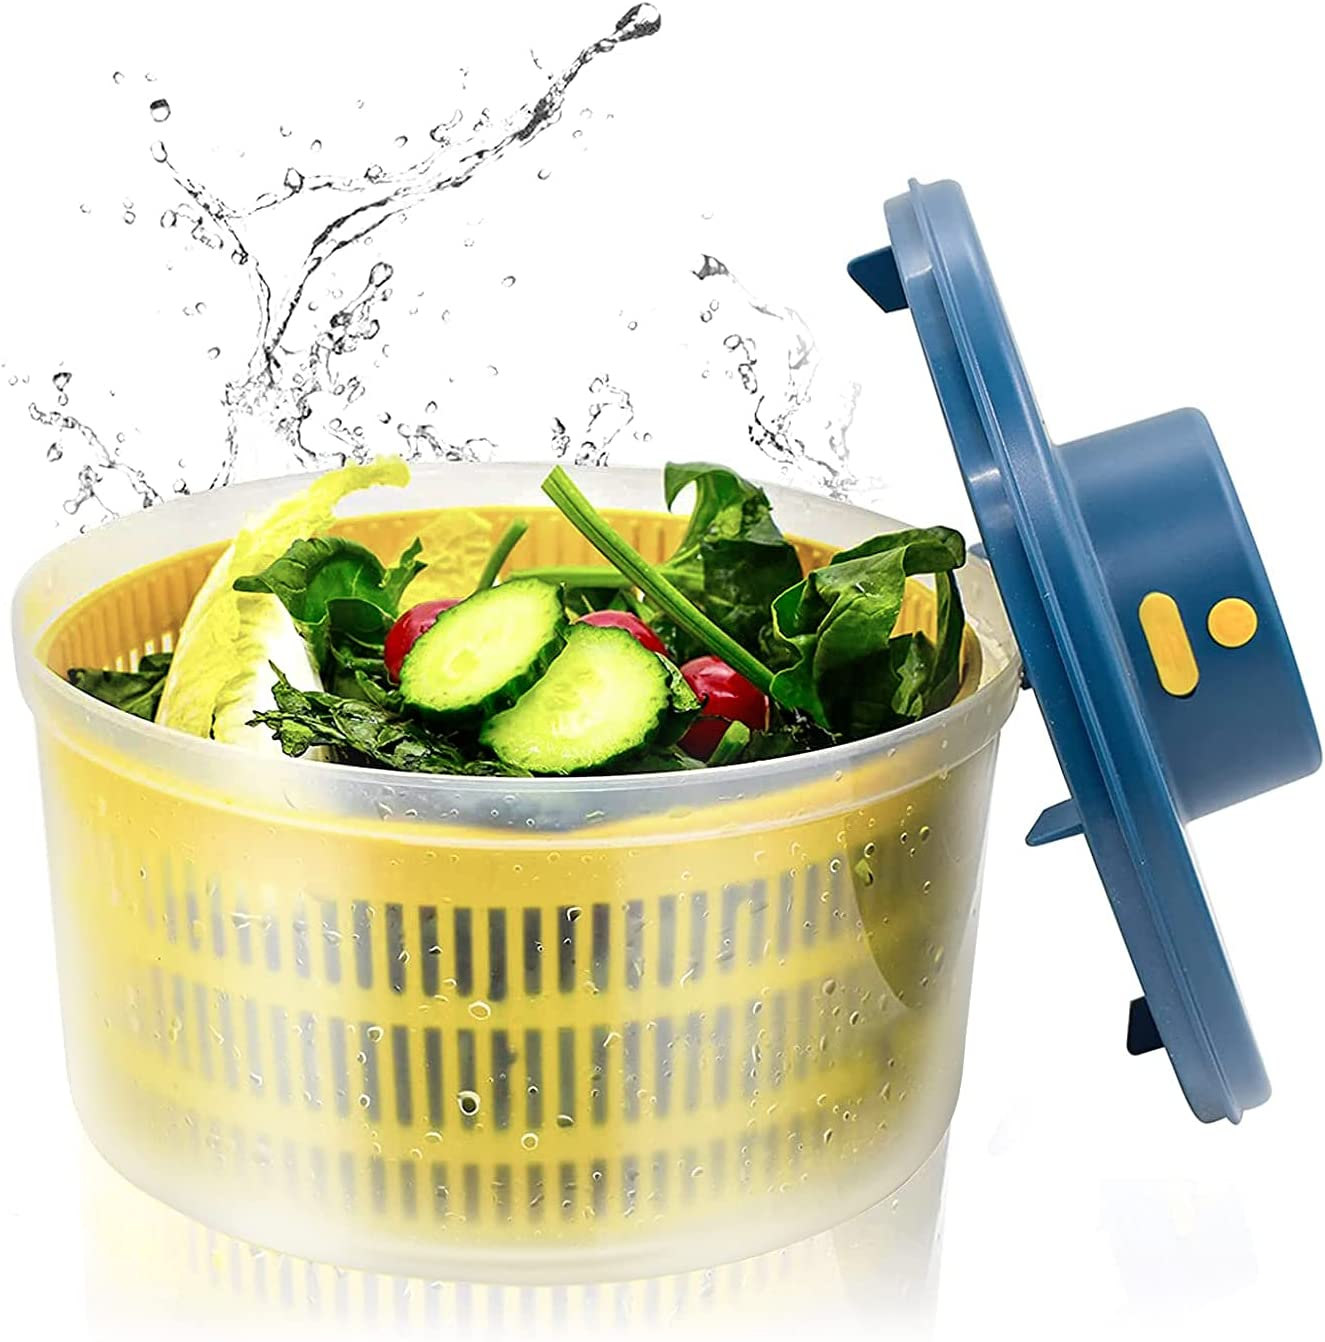 Surprise price BORNKU Electric Salad Spinner 3L Washer Bowl USB Vegetable with Max 78% OFF